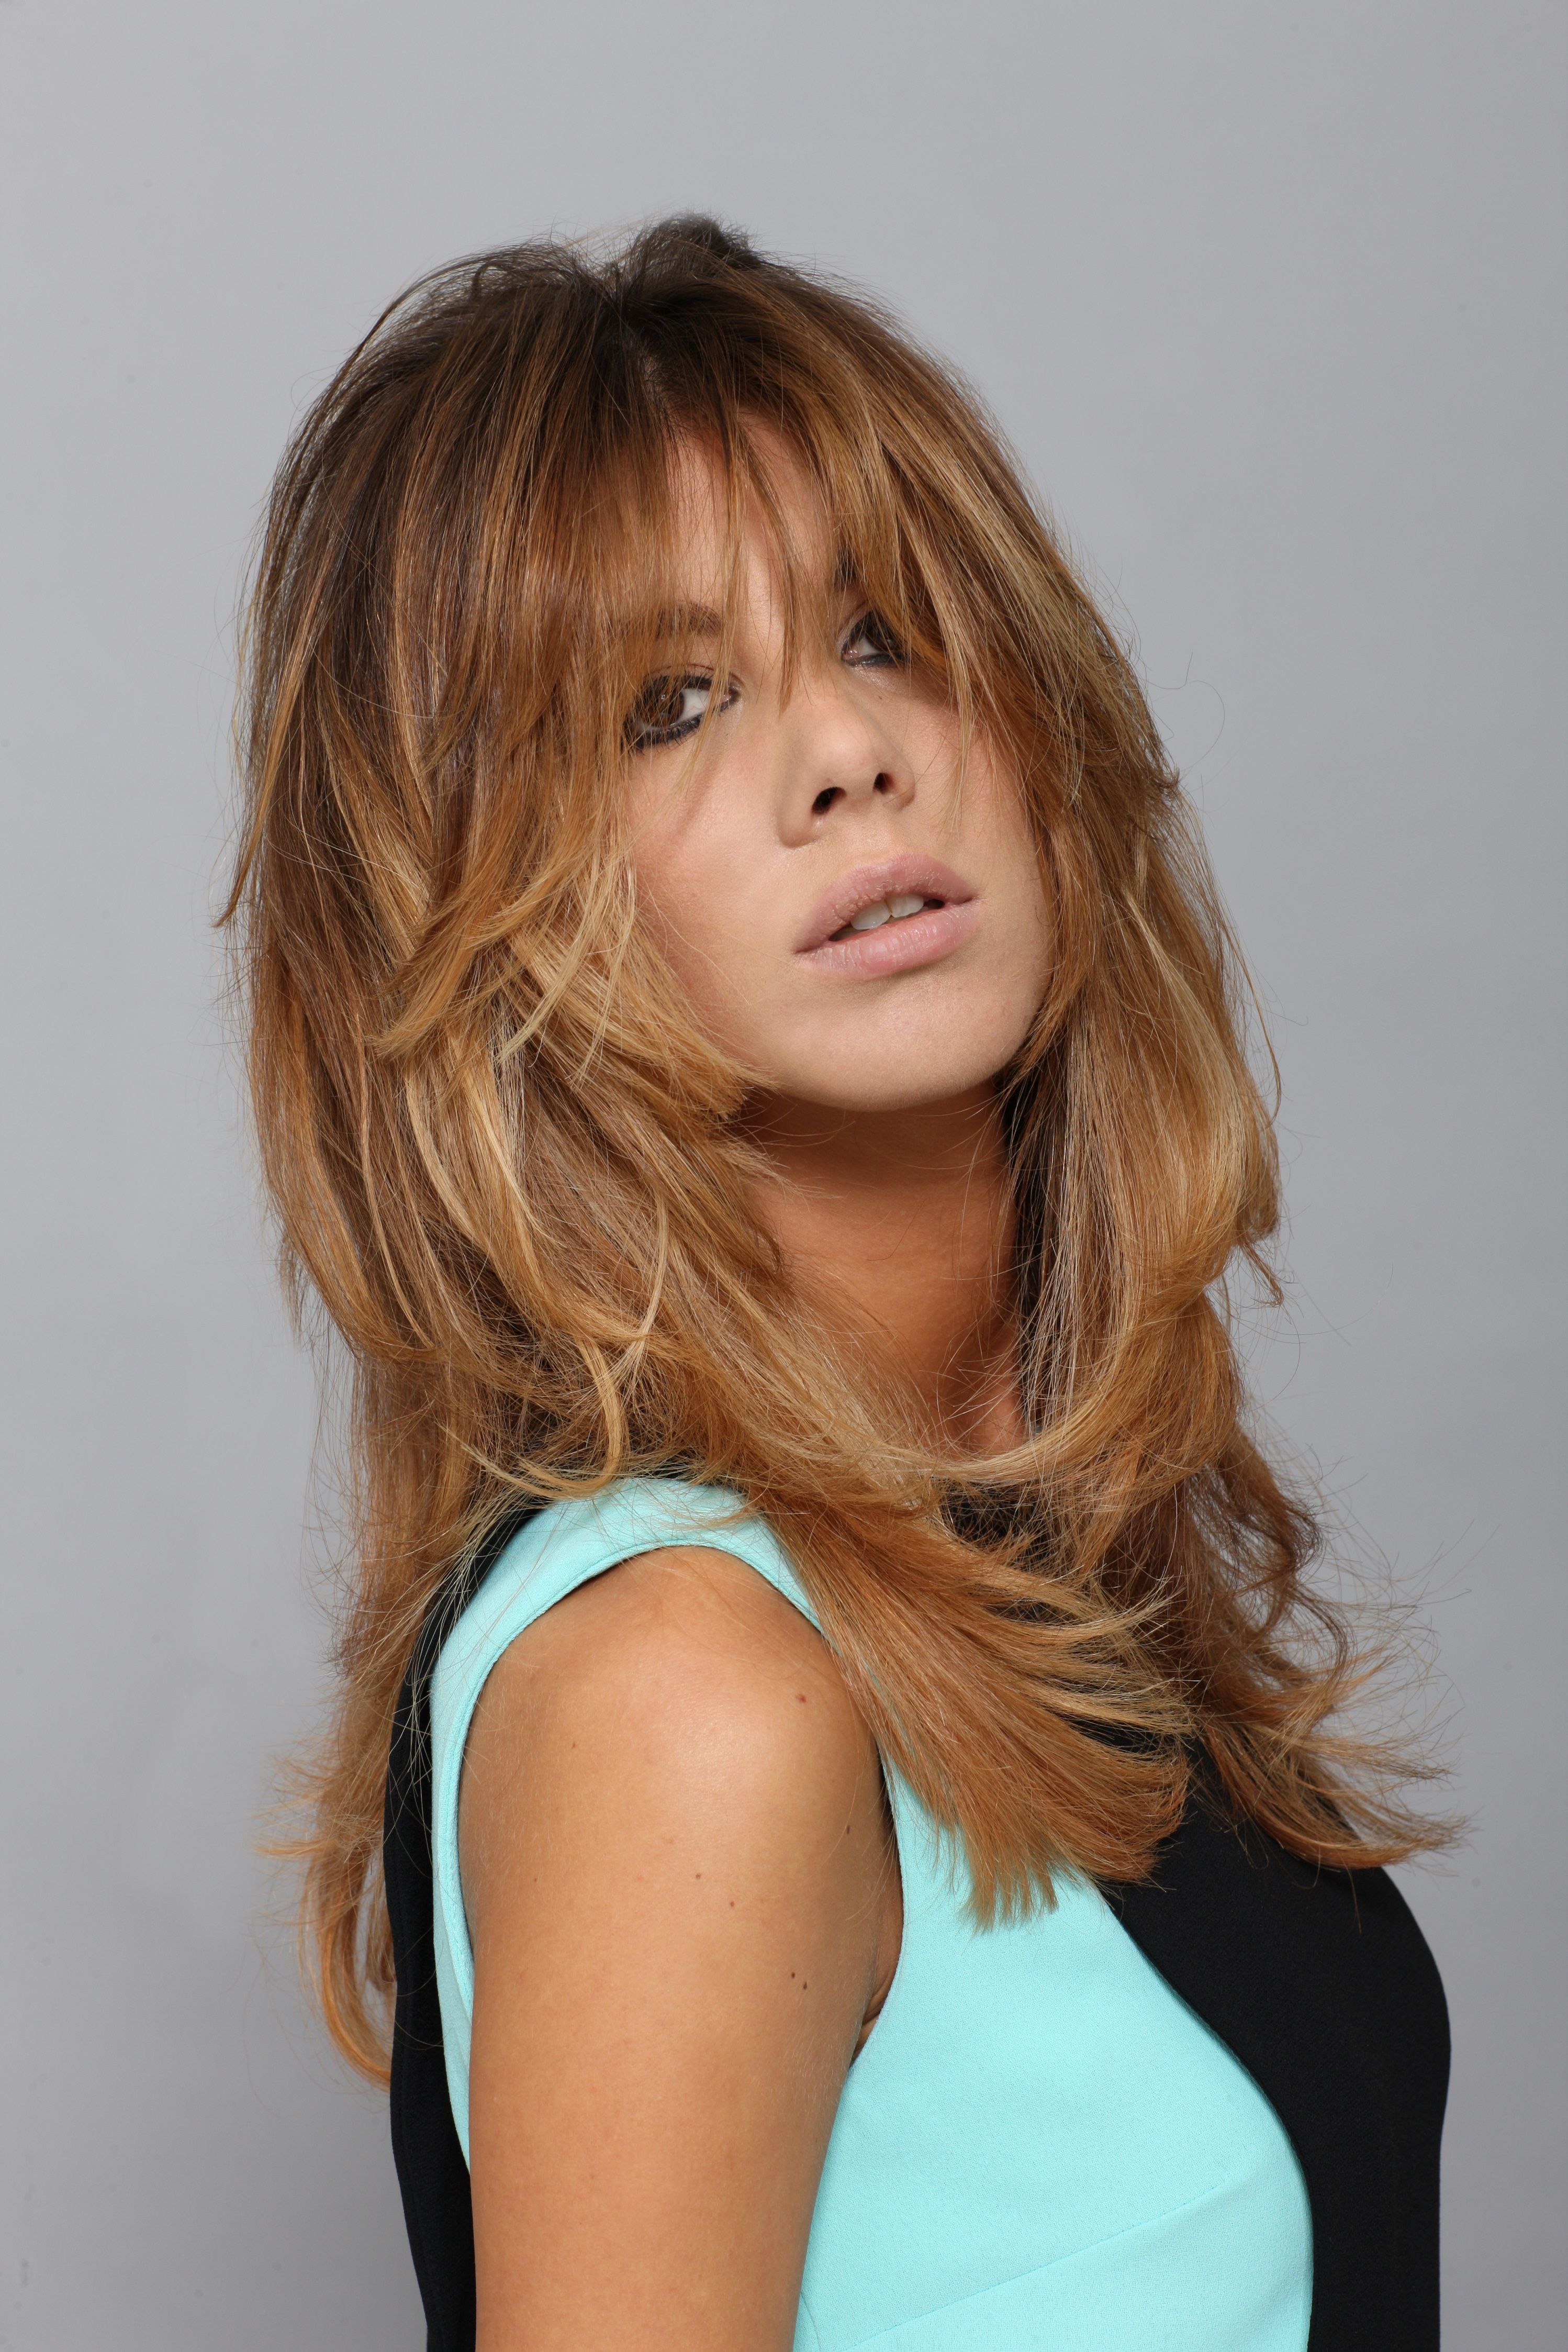 Hairstyle by our Creative Director Stefano Lorenzi